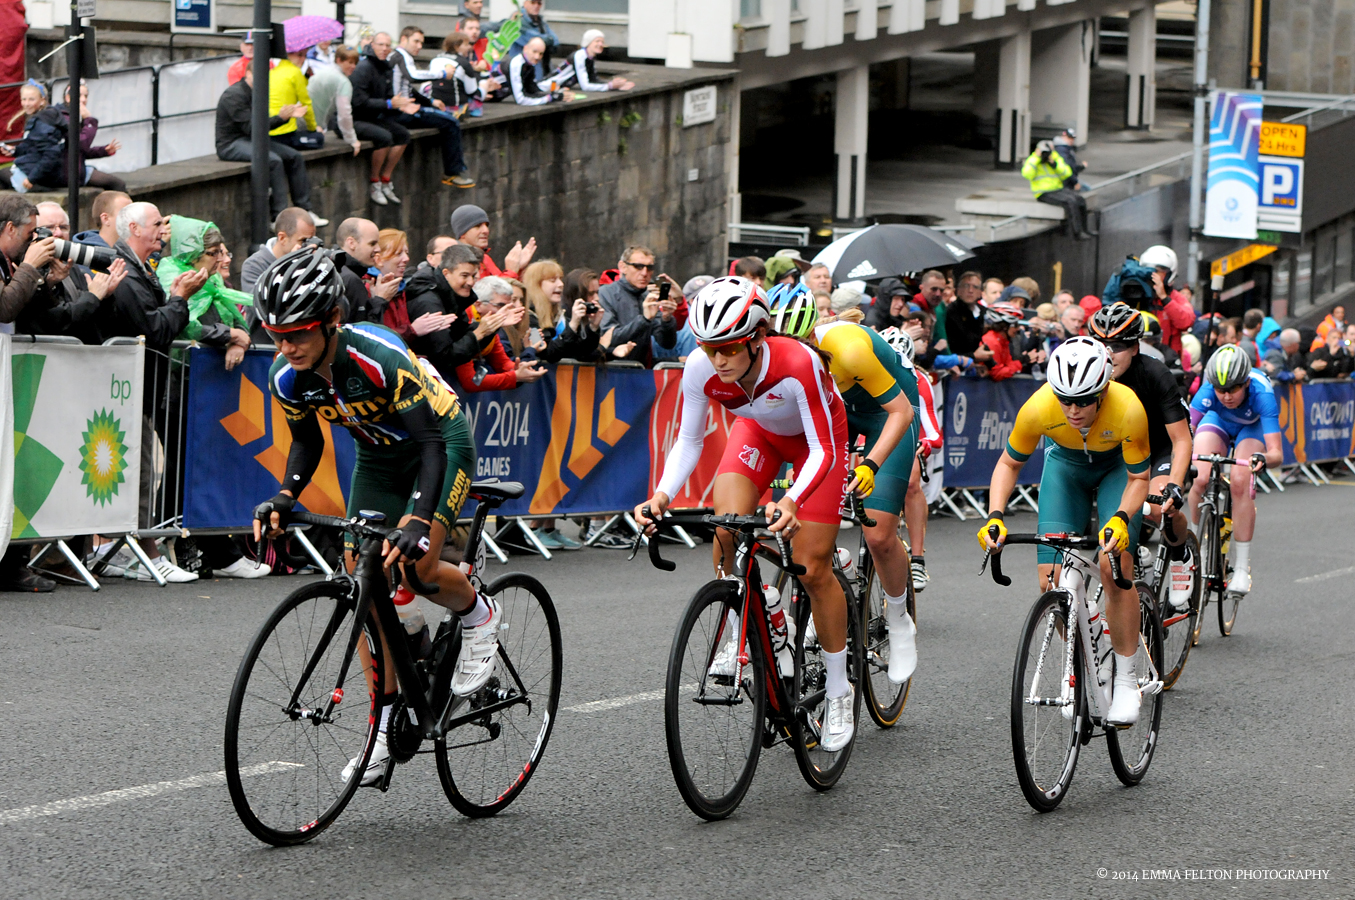 Ashleigh on her way to win Bronze in the Commonwealth Games Road Race in Glasgow